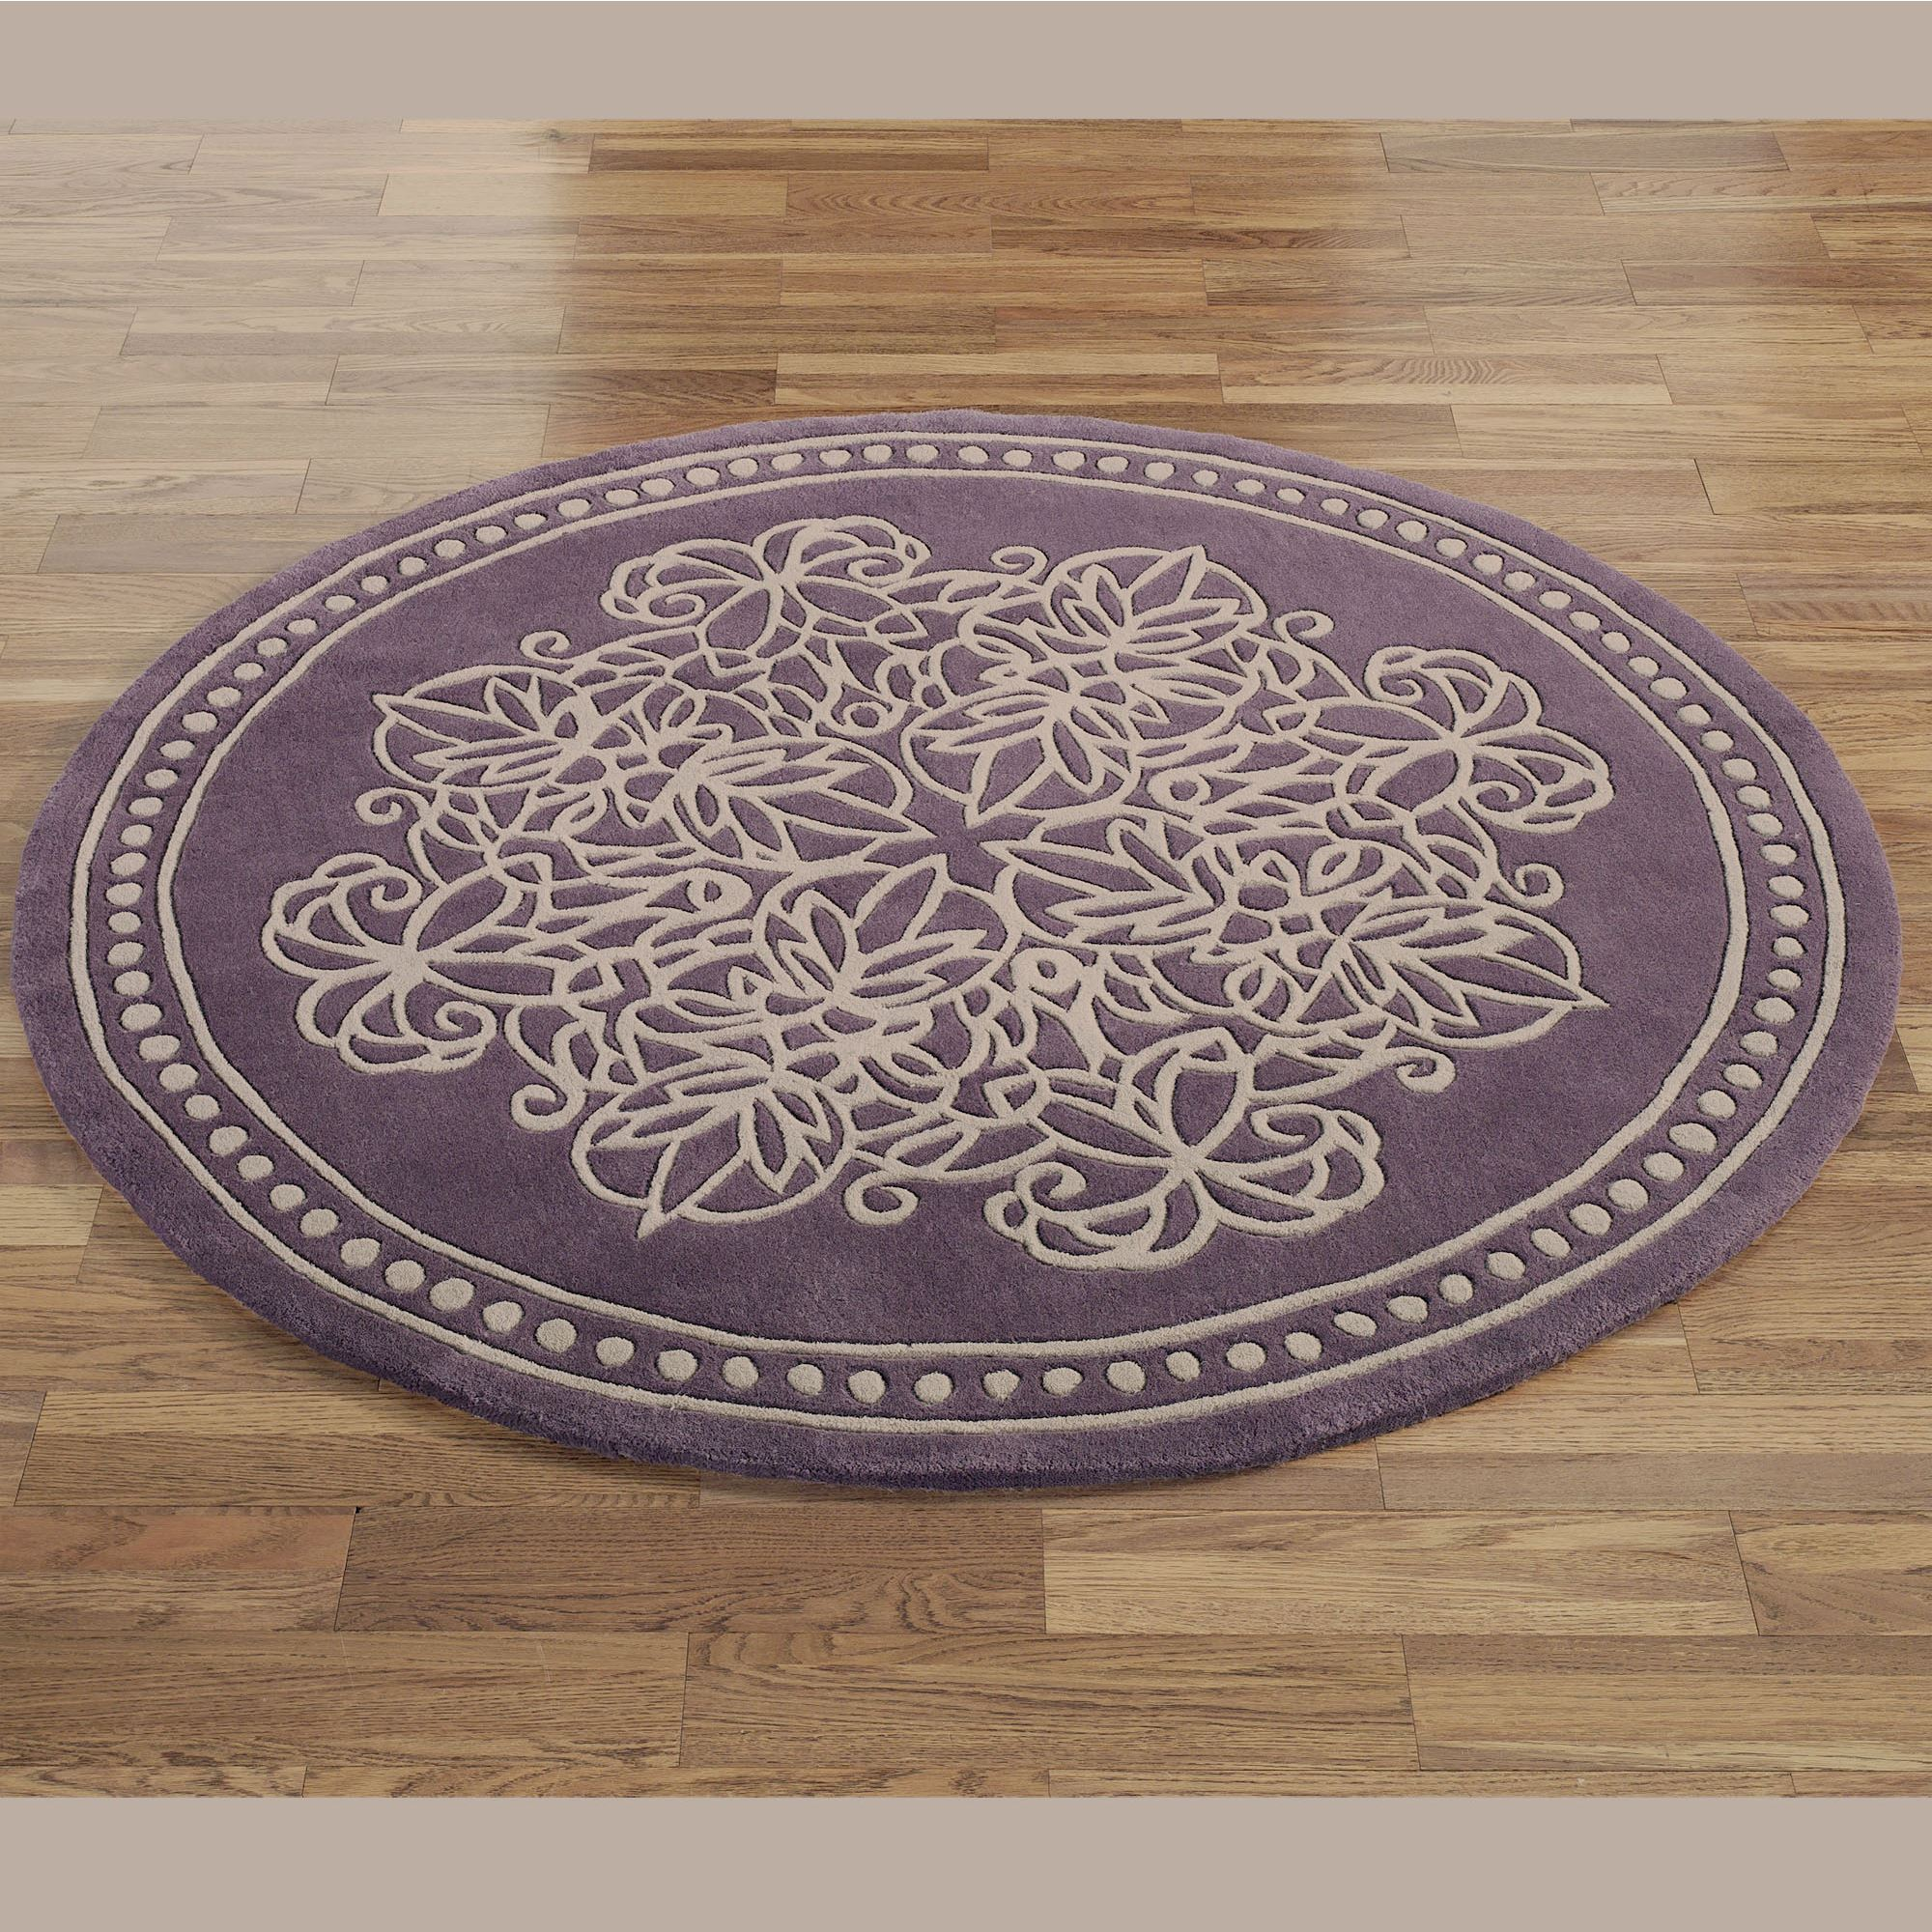 Vintage Lace Round Rugs